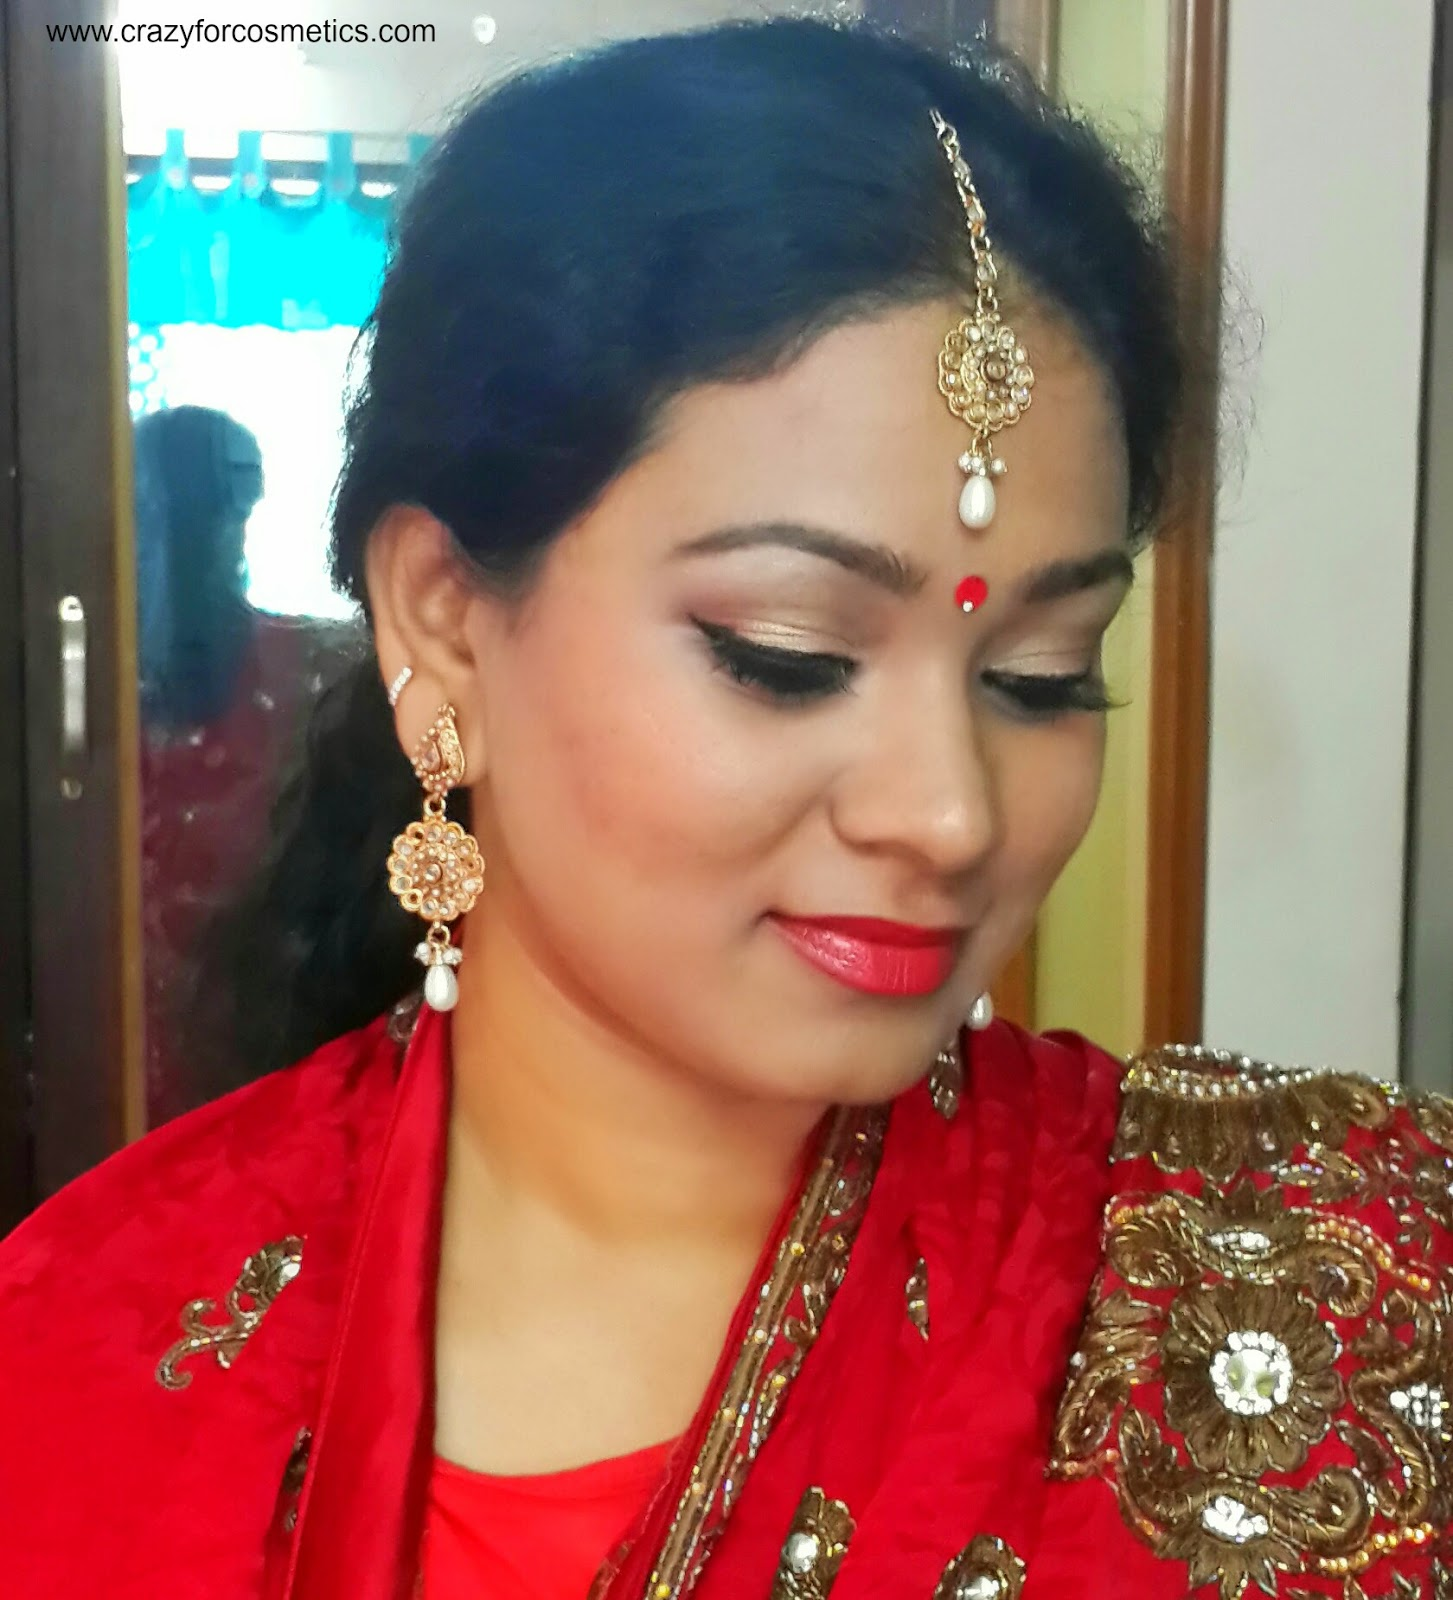 Bengali Bridal makeup-Bengali Bridal makeup tutorial- Indian Bridal makeup tutorial-Indian bengali Bridal makeup step by step-Indian eyeshadow makeup tutorial-Bengali wedding makeup eyemakeup tips-Indian bridal makeup tips blog-Bengali weddings-Bengali saree